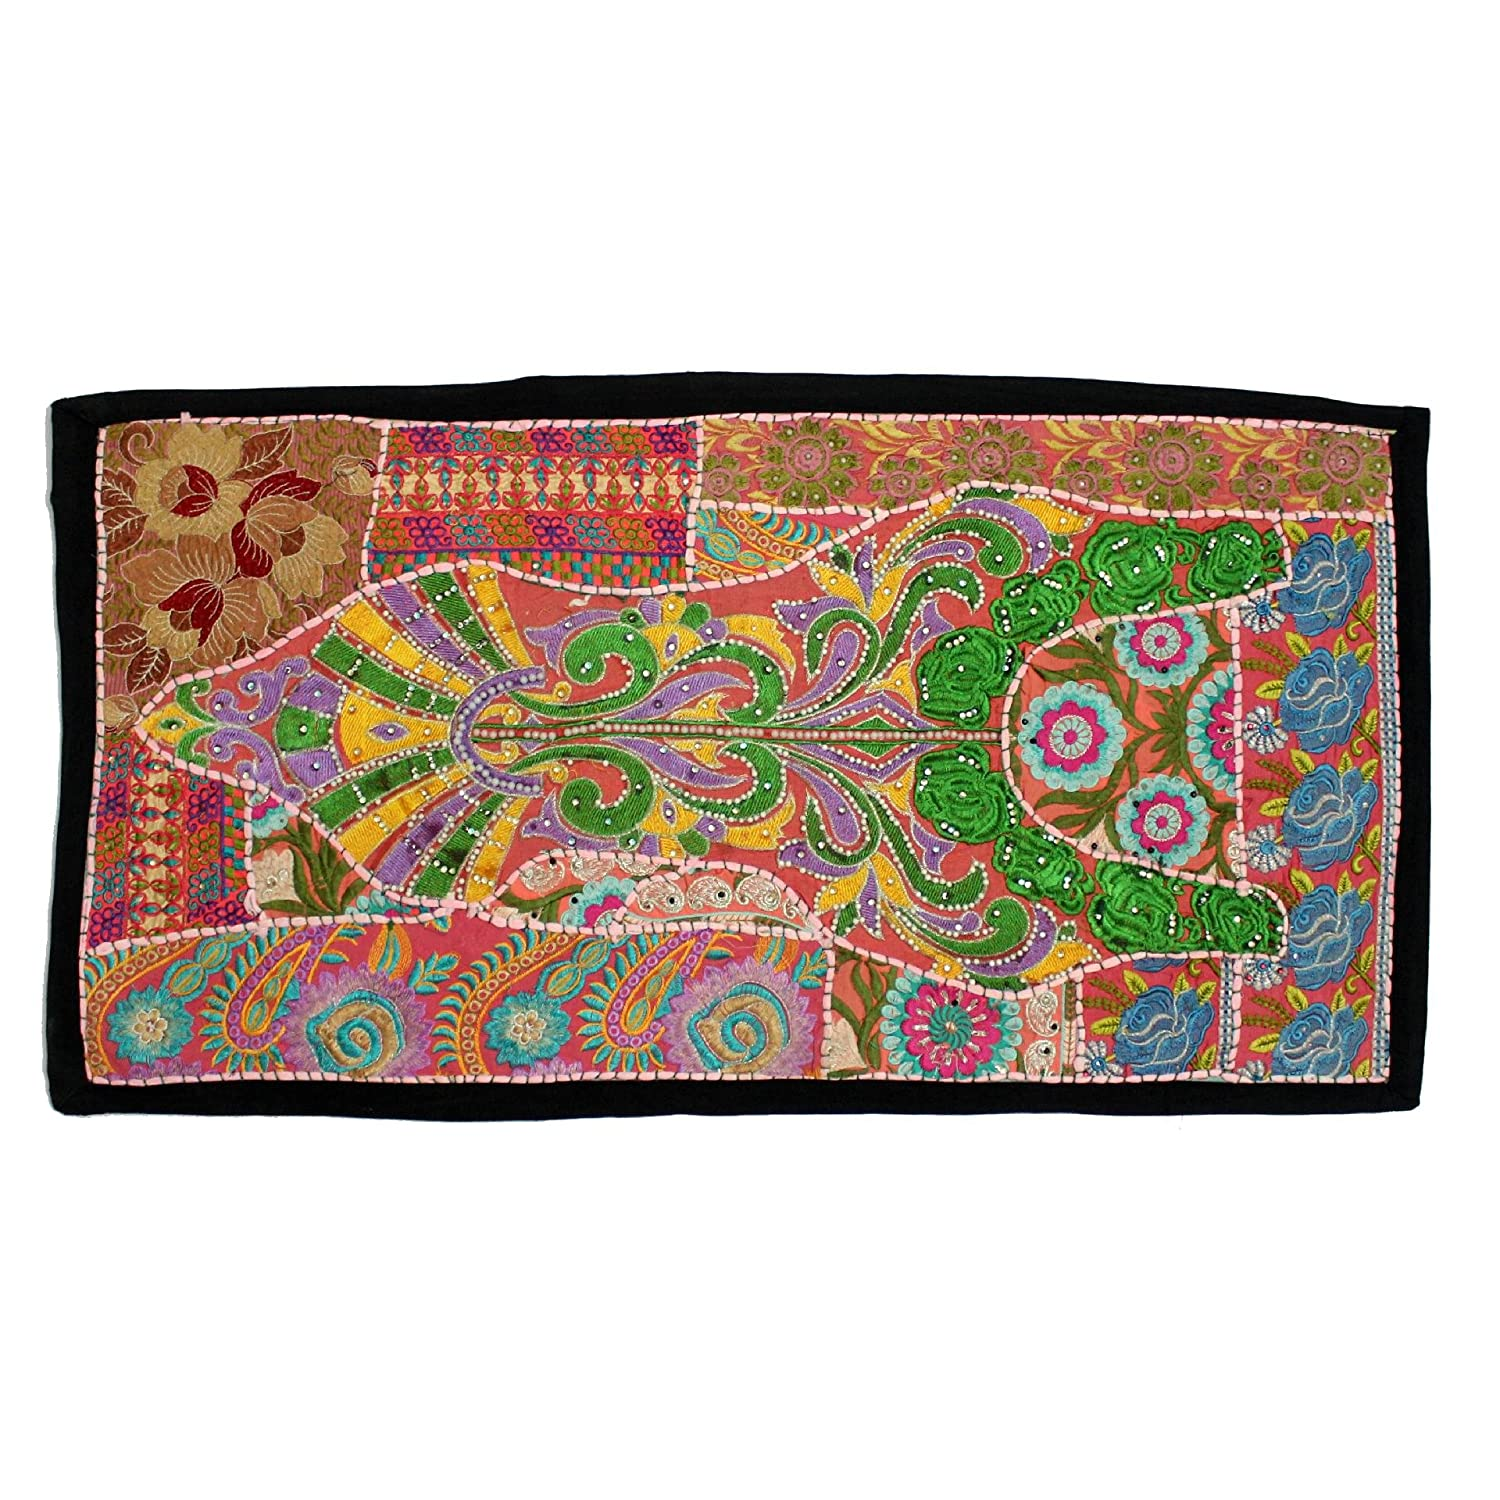 Ranking TOP1 Vintage Embroidered Patchwork Traditional Bargain Room Beautiful Living